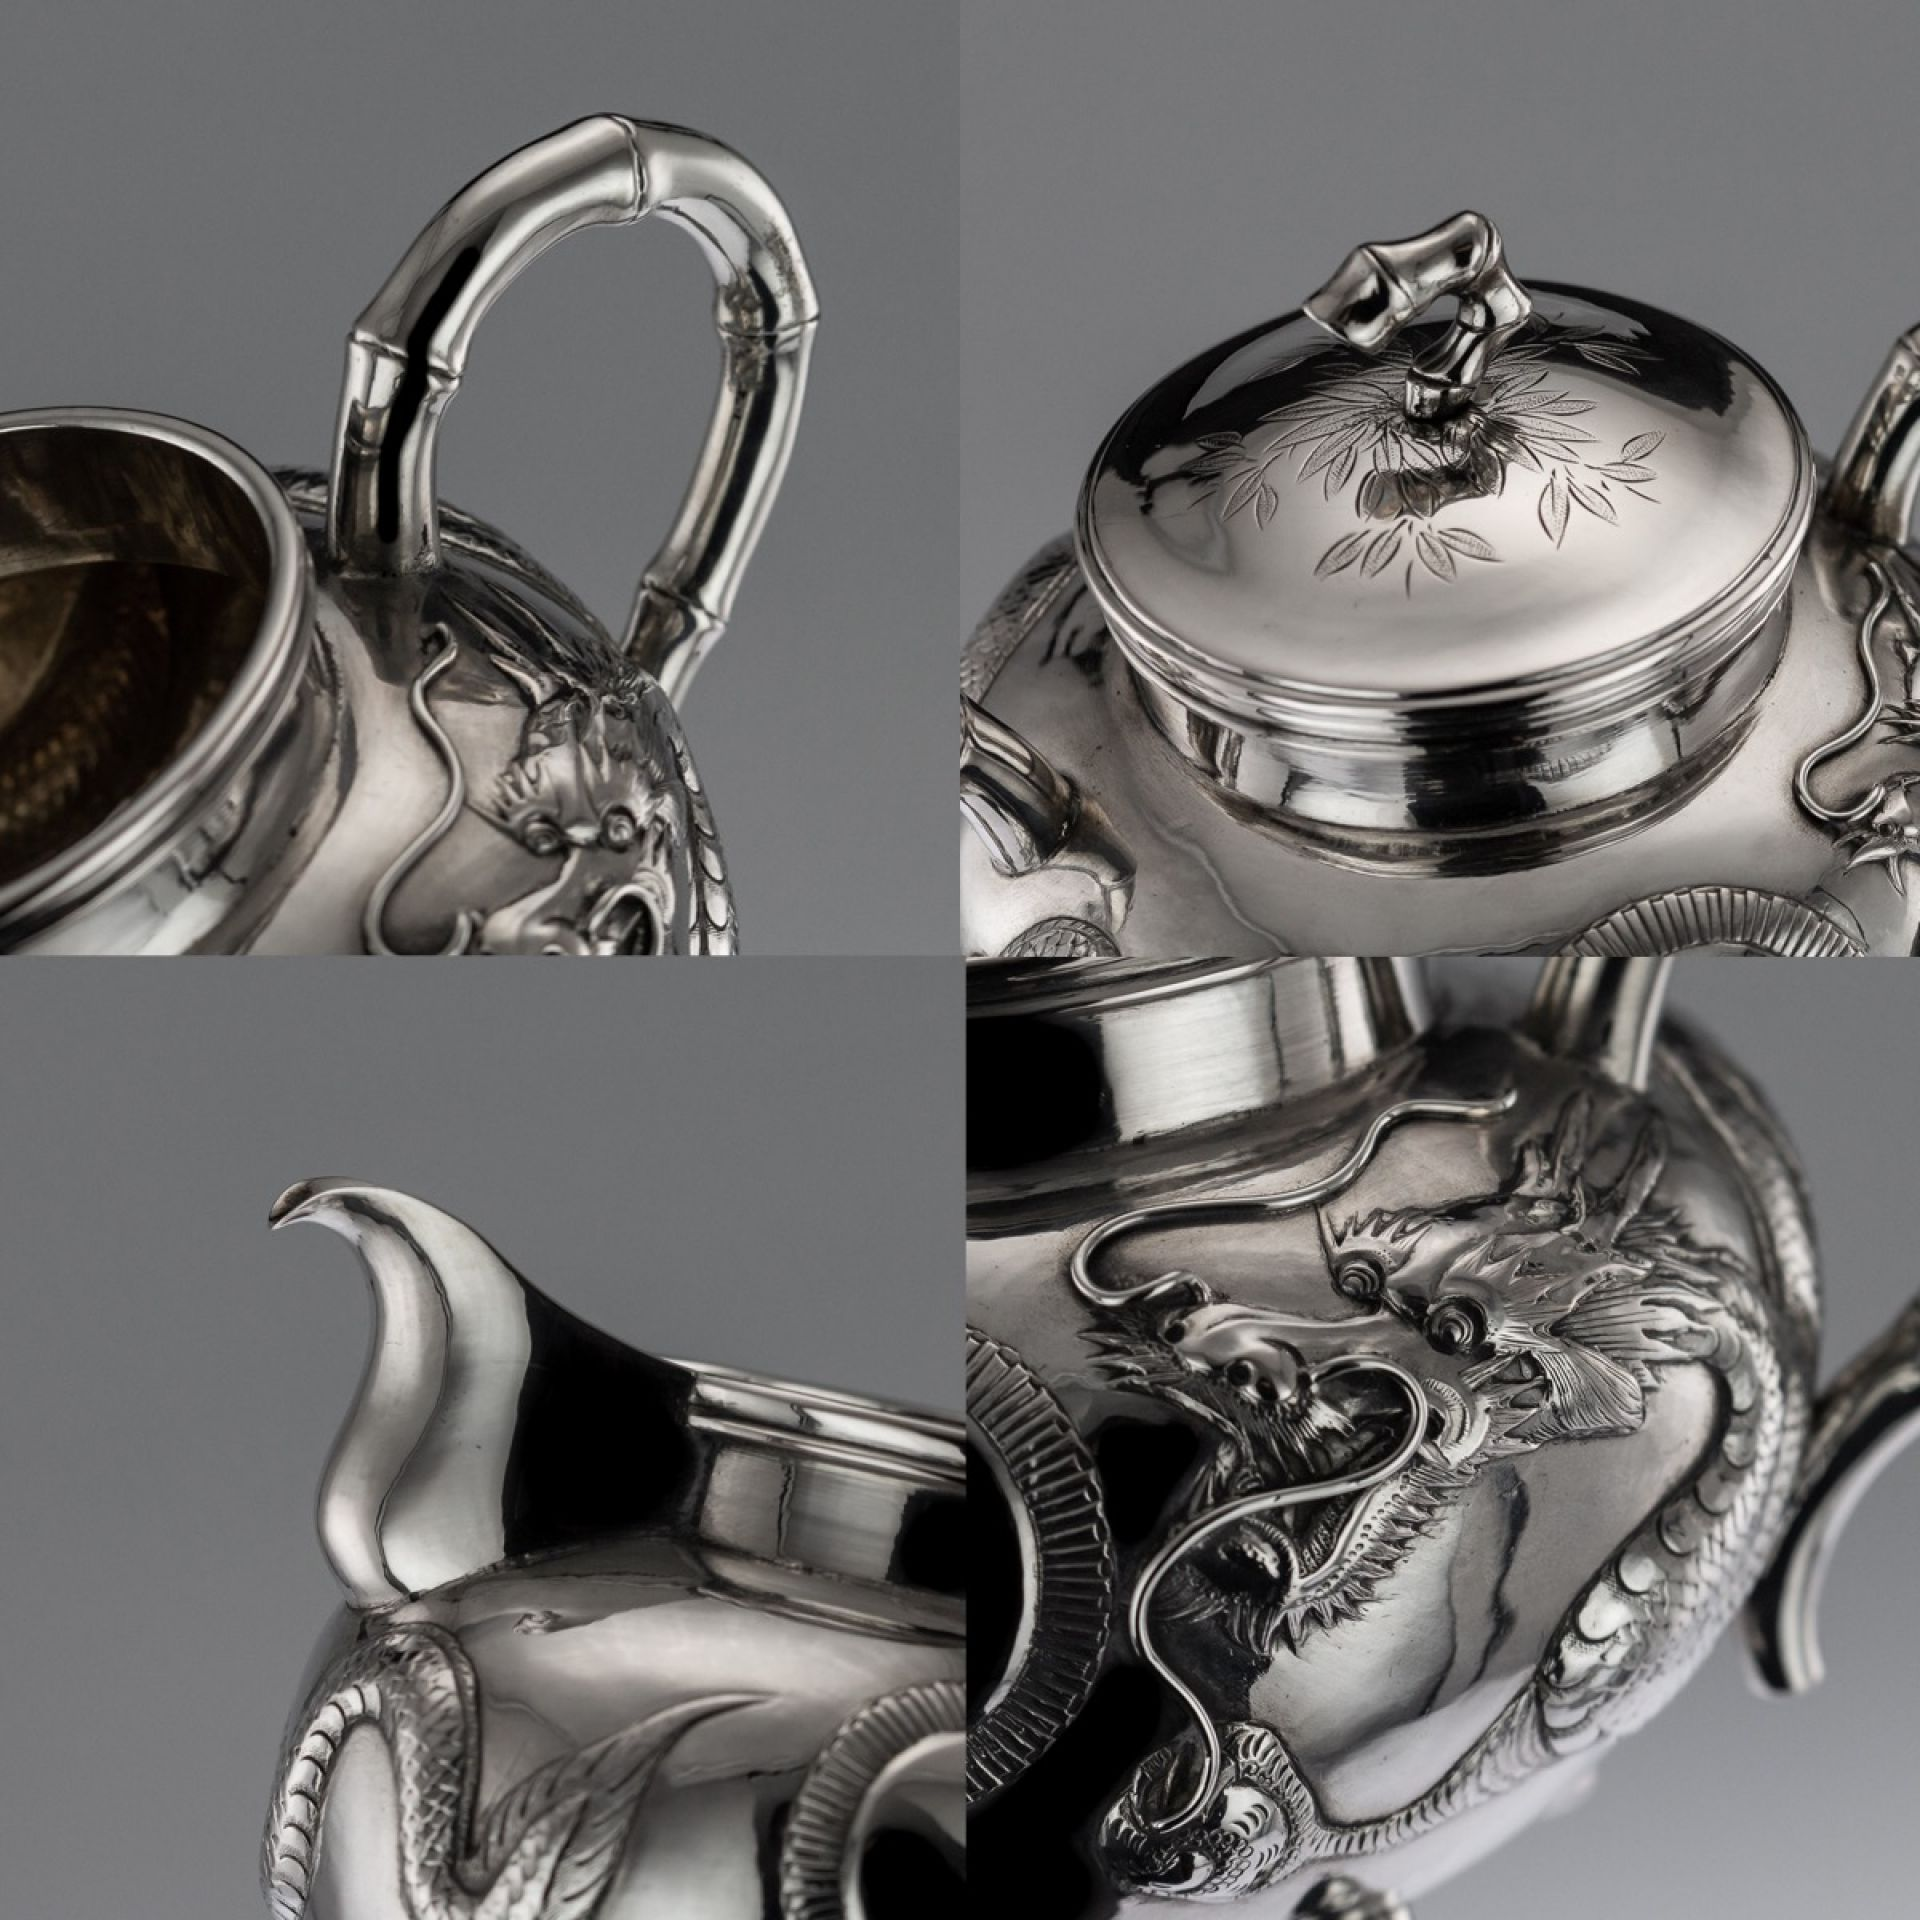 ANTIQUE 20thC CHINESE EXPORT SOLID SILVER DRAGON TEA SET, KWAN WO c.1900